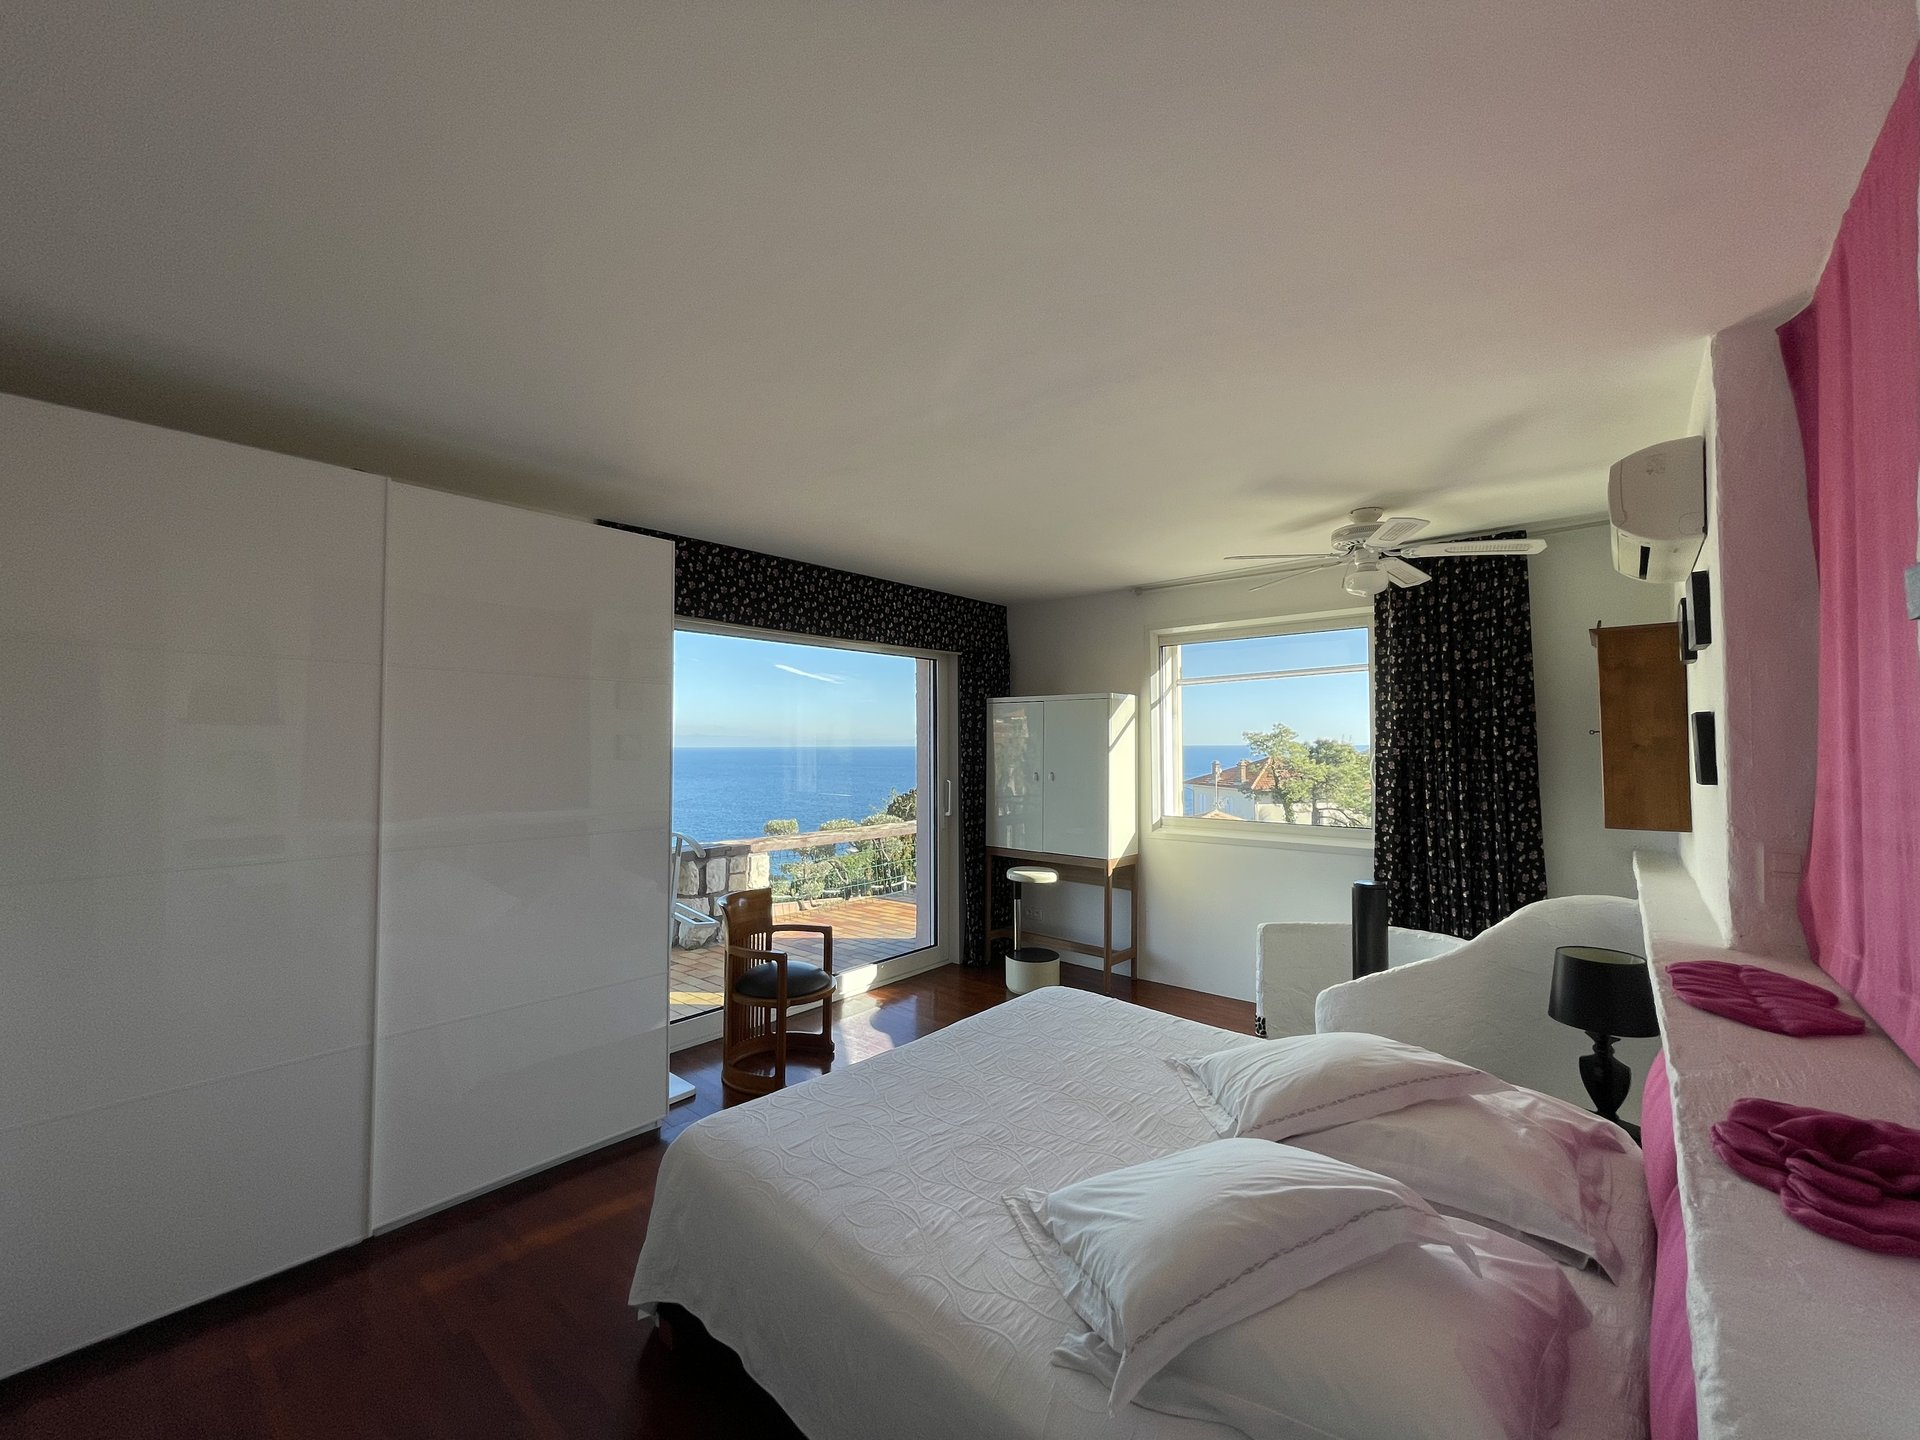 9 -room villa with panoramic sea view